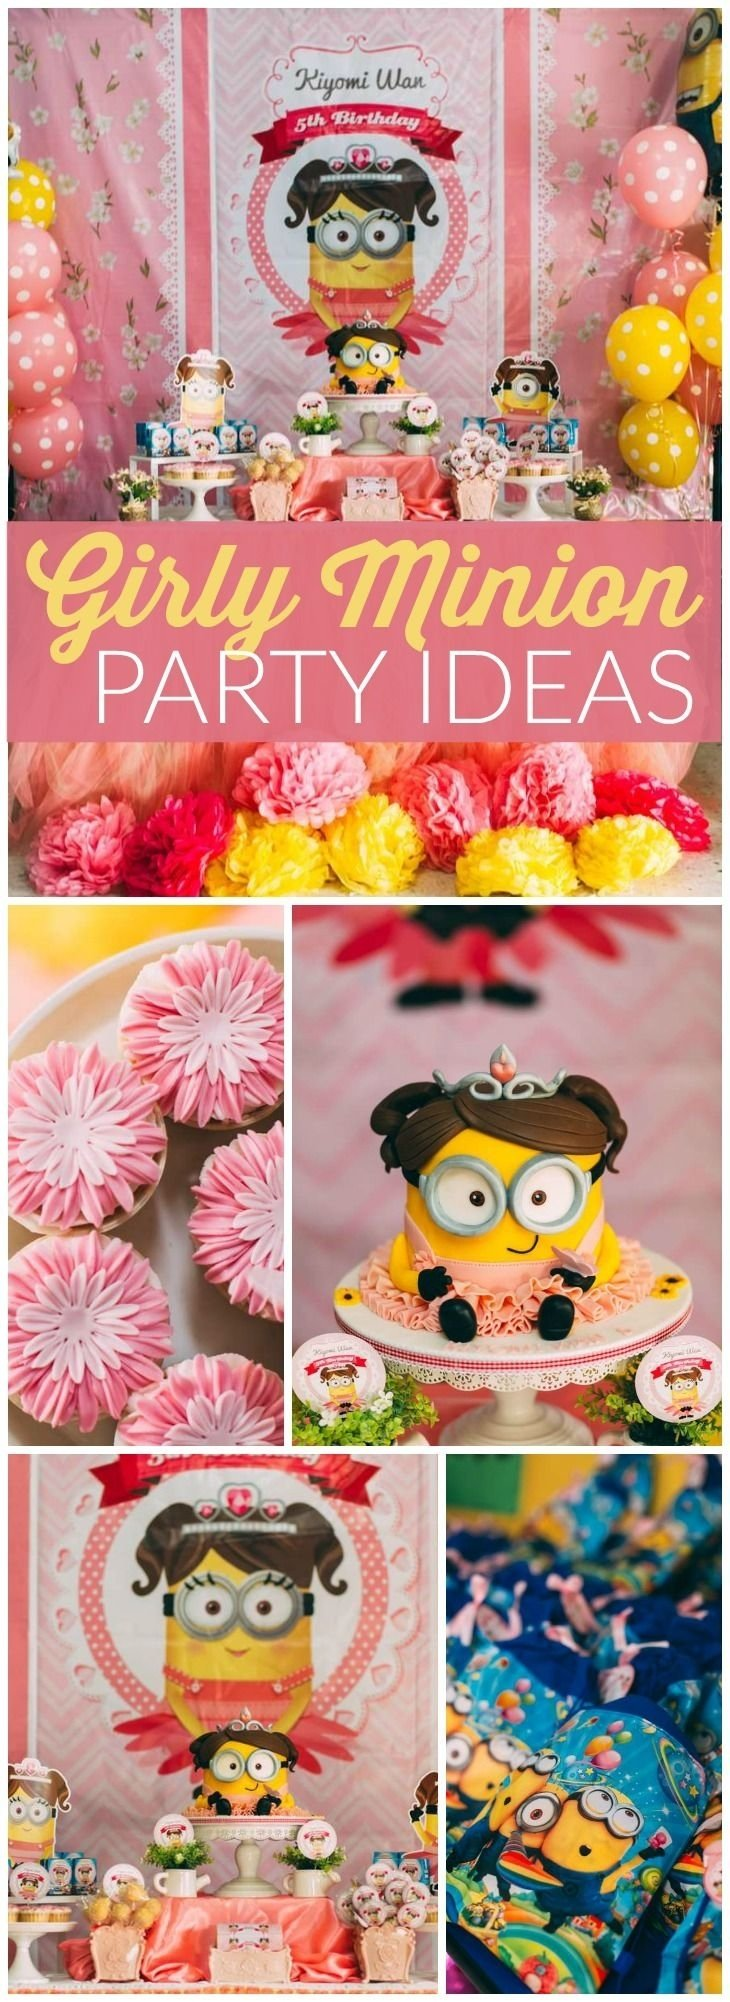 10 Attractive Girls 5Th Birthday Party Ideas 347 best despicable me minions party ideas images on pinterest 1 2020